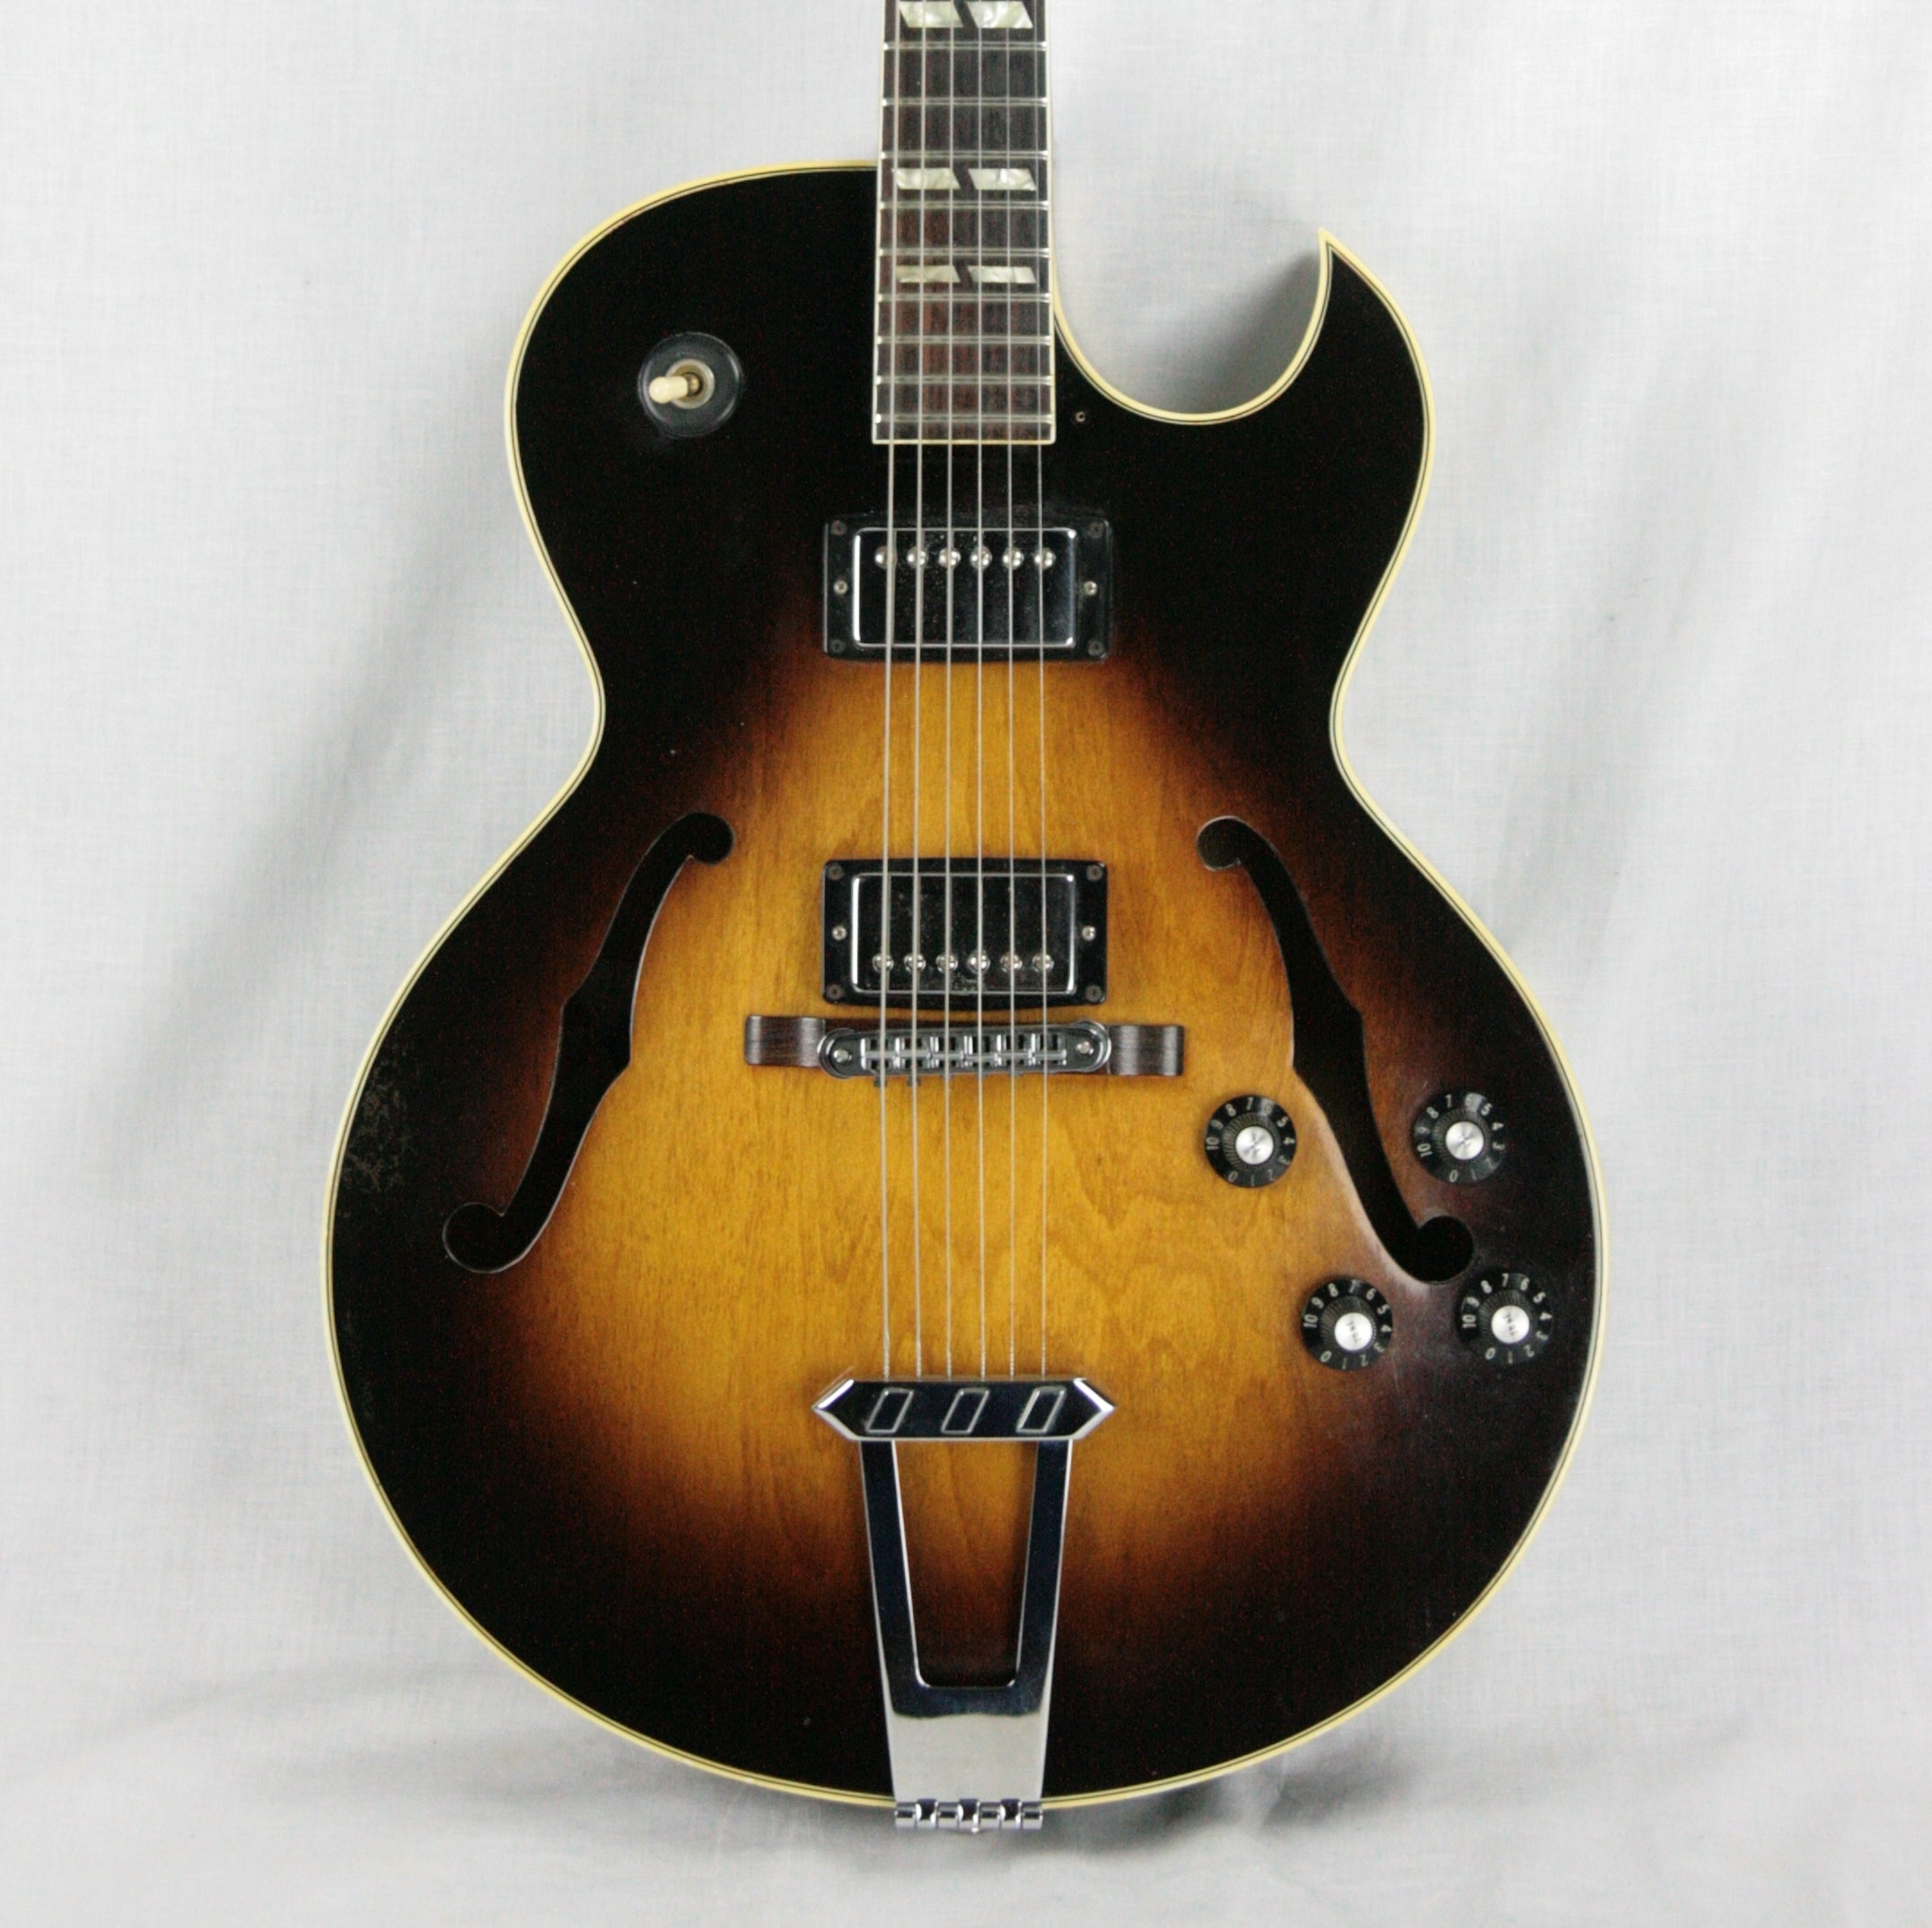 1981 Gibson ES-175 D Archtop Jazz Electric Guitar! Tobacco Sunburst! 335 355